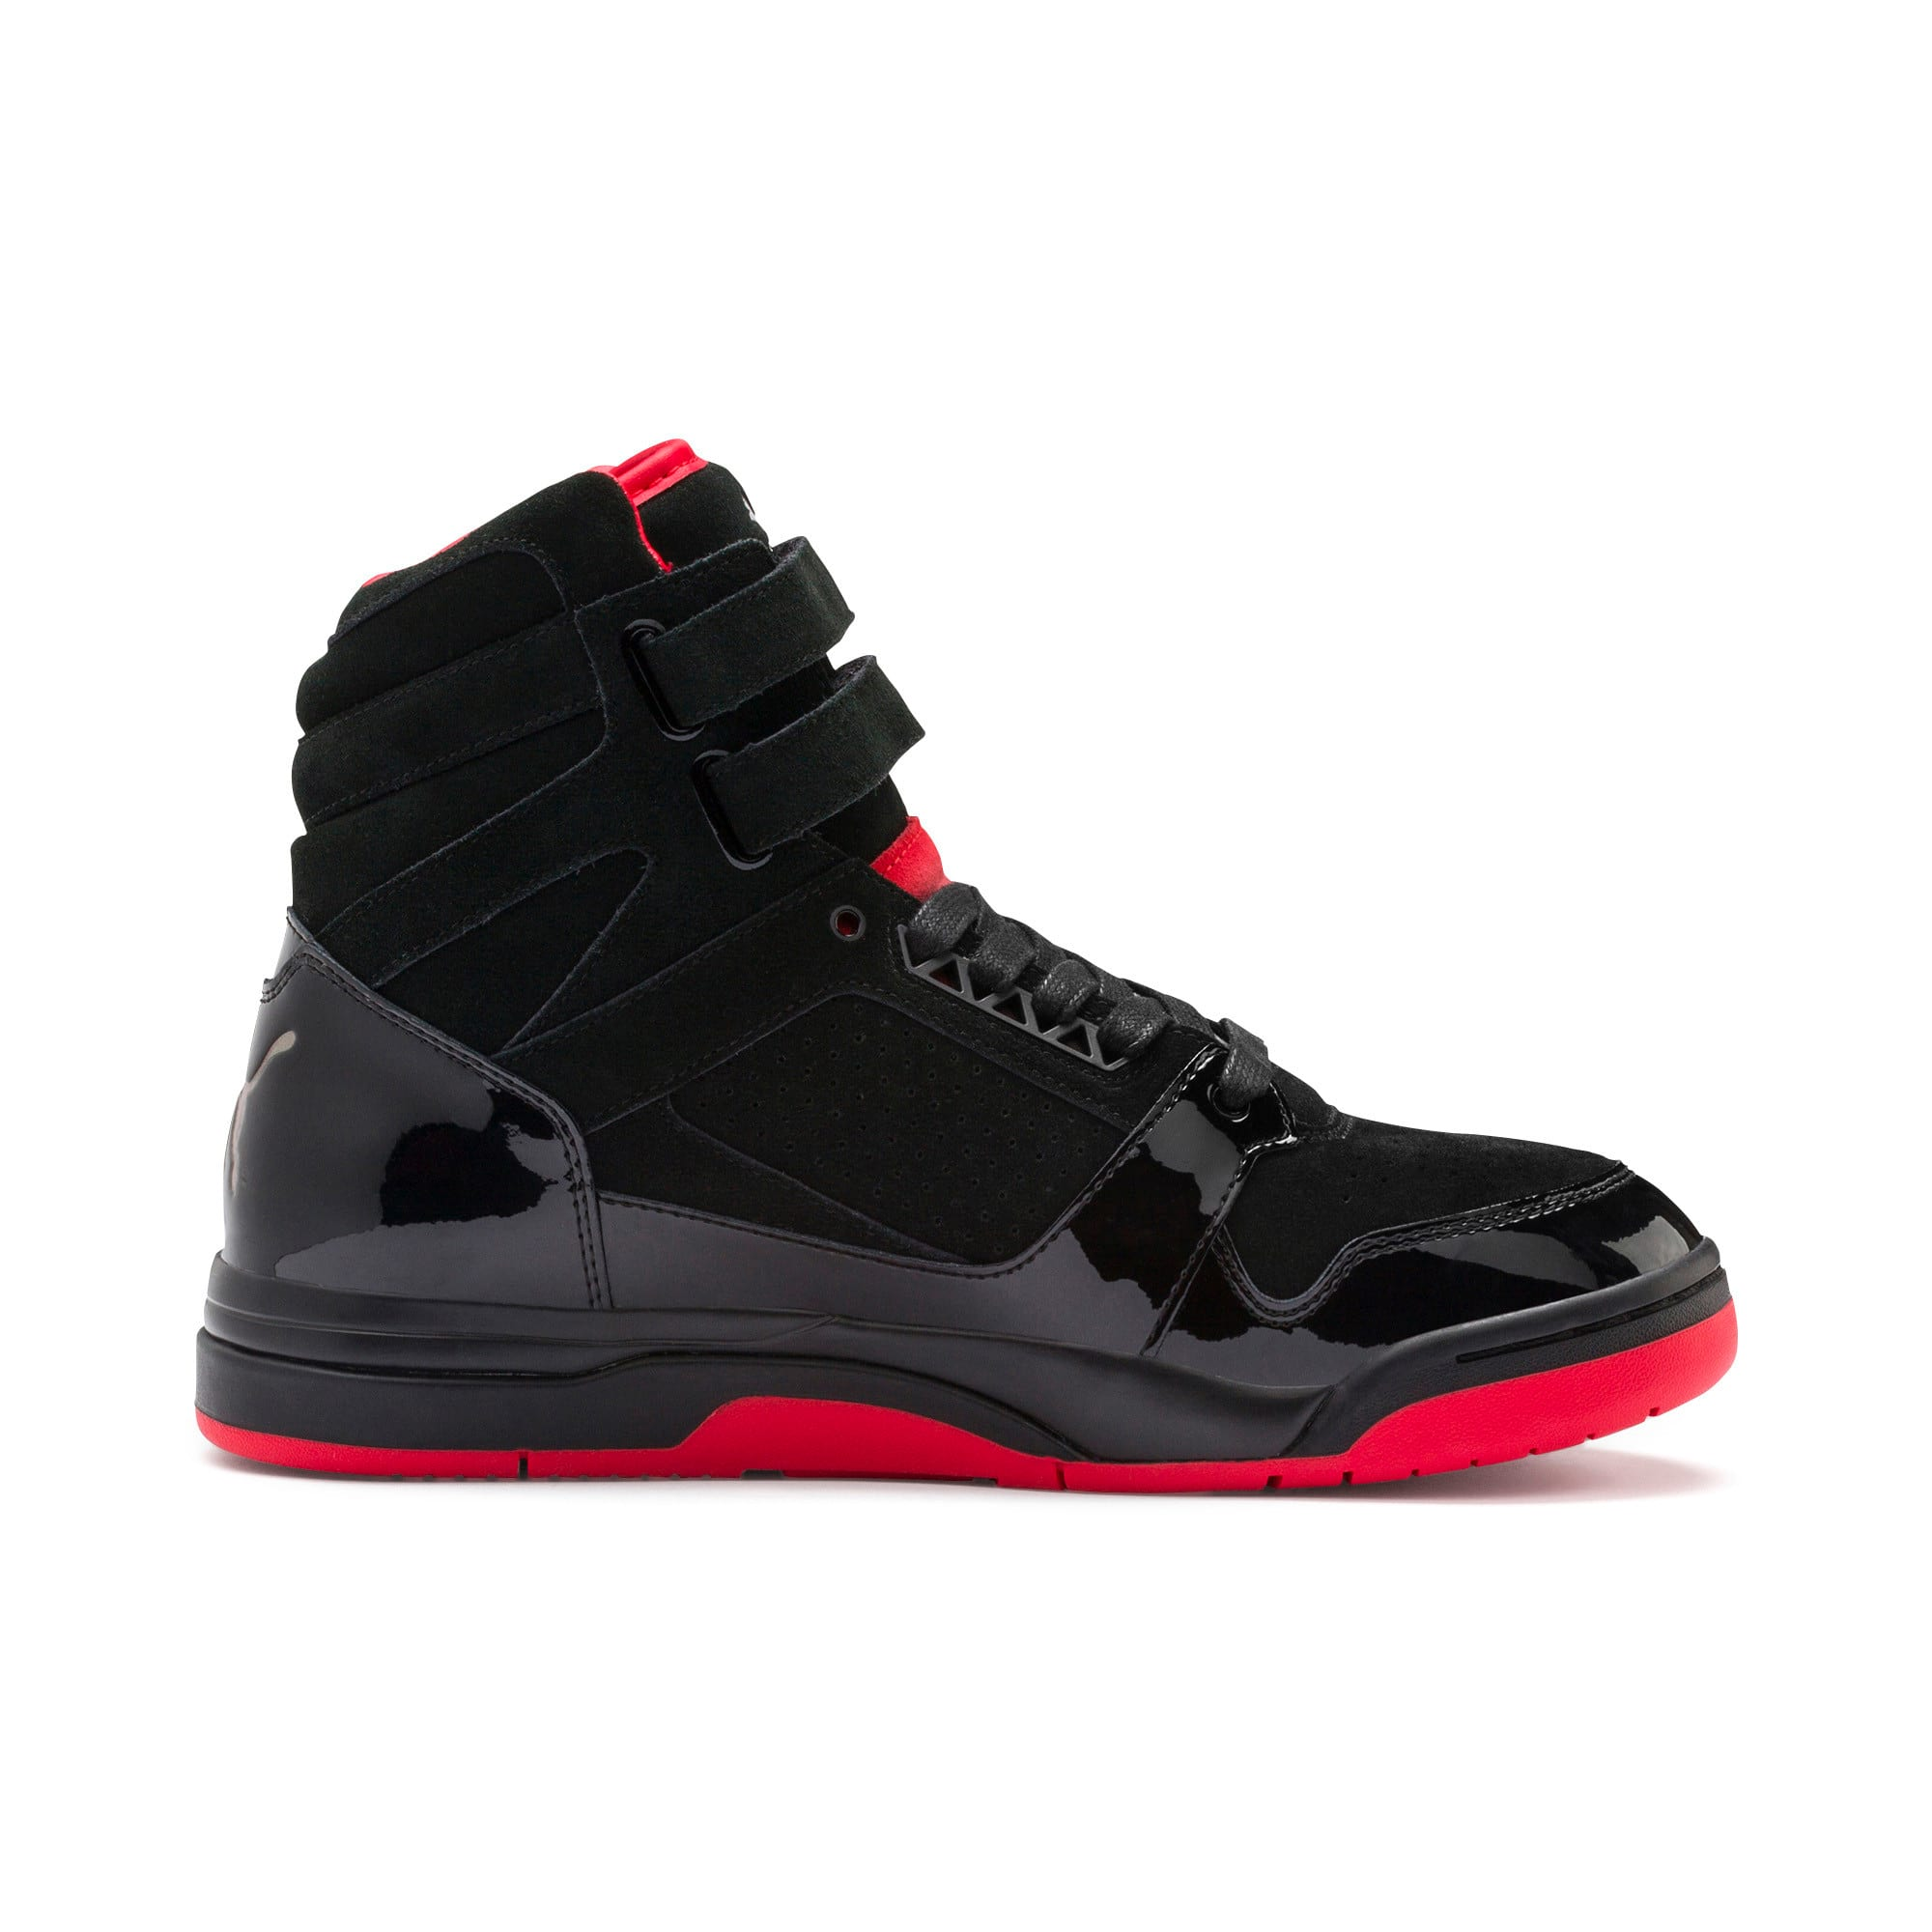 Thumbnail 6 of Palace Guard Red Carpet Mid-Cut Basketball Shoes, Puma Black-Risk Red-Bronze, medium